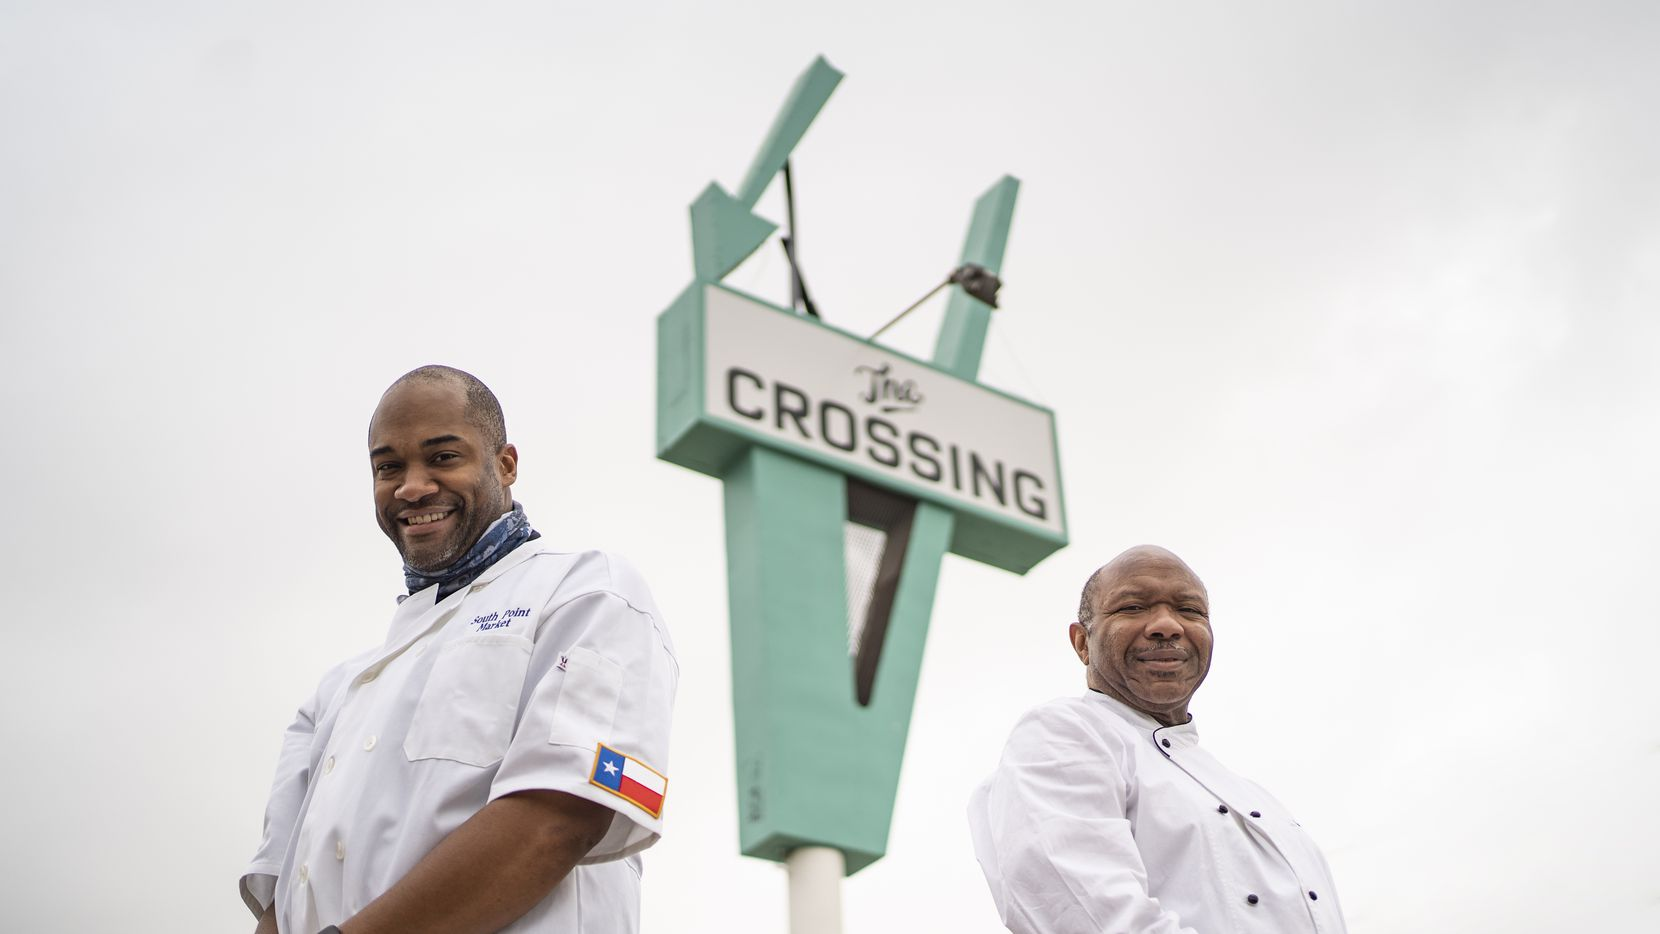 Cornerstone Church Pastor Chris Simmons (right) is opening a small non-profit grocery mart in a South Dallas neighborhood. Donald Wesson Jr. (left), Cornerstone's program director, says he knows that's going to be difficult in this neighborhood. That's why he looked for a different model for the market.